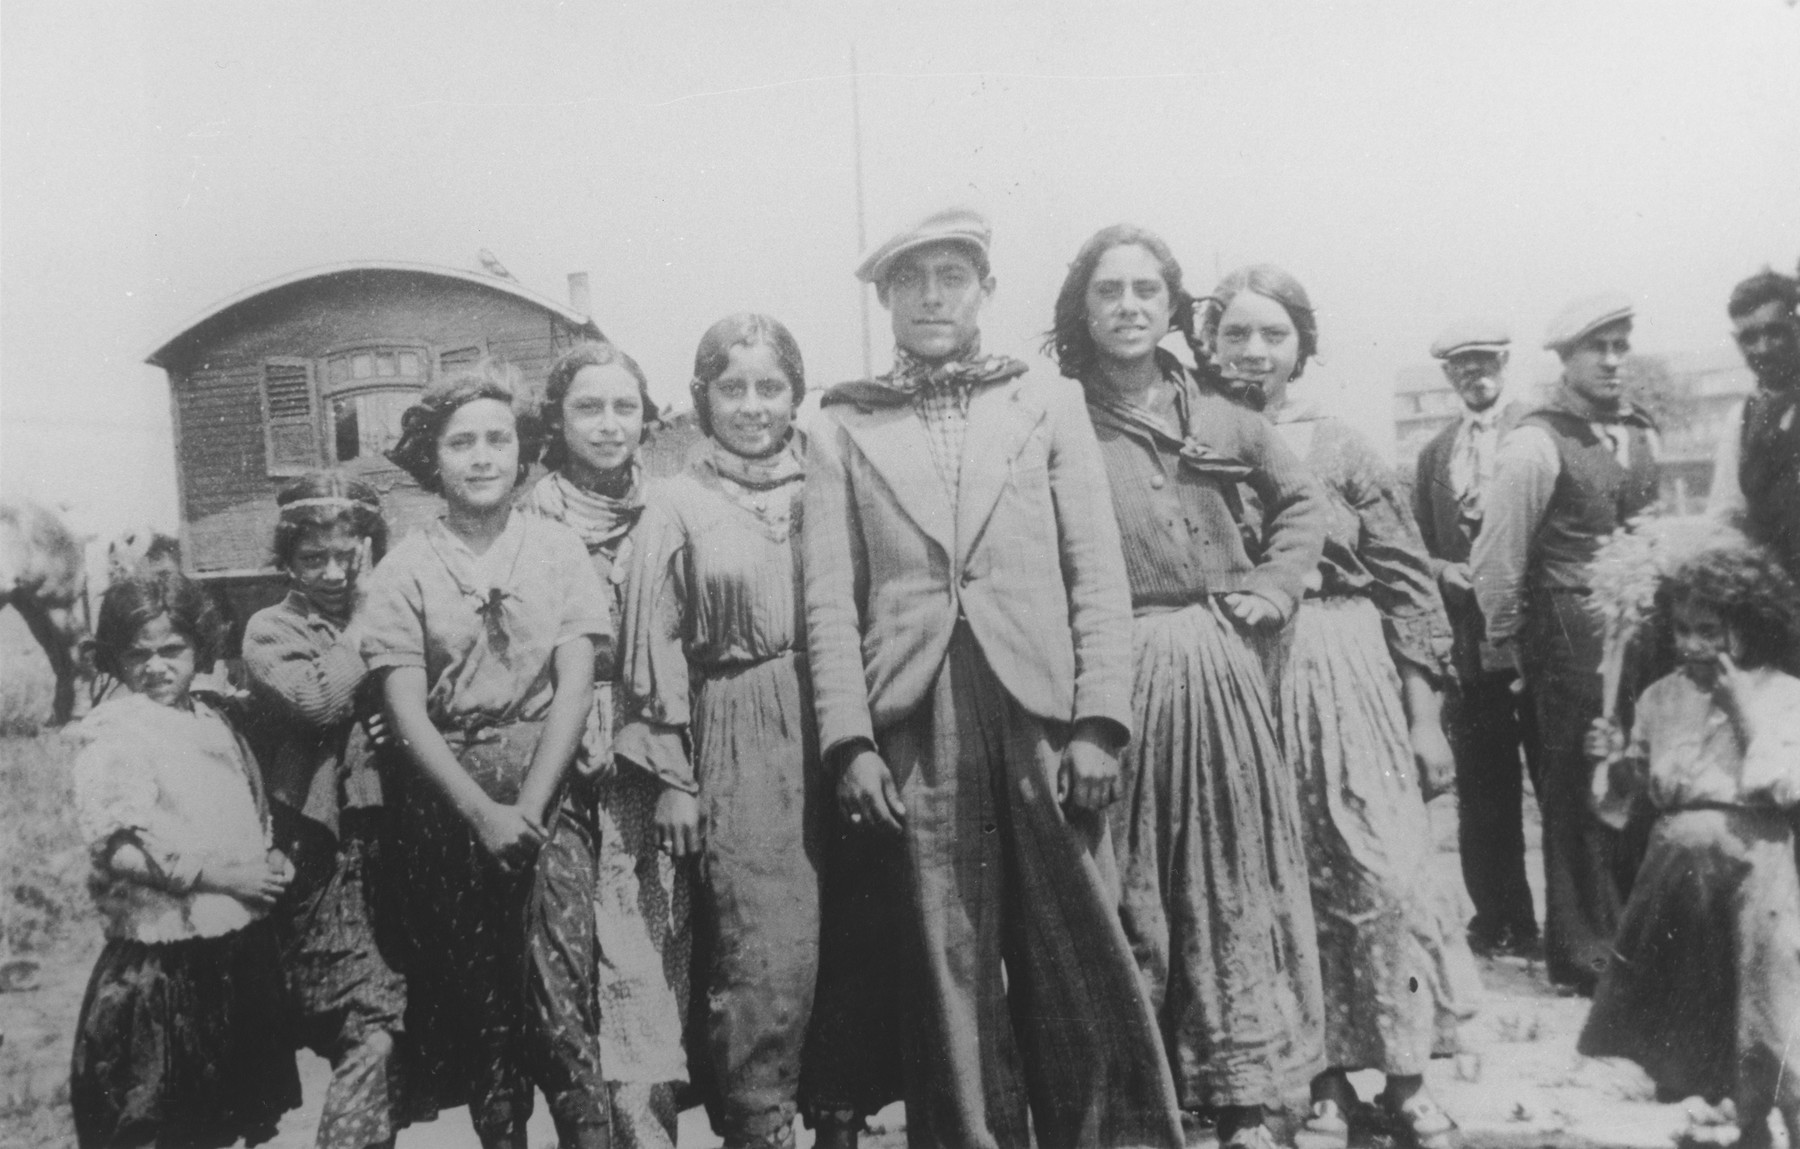 A Gypsy family poses in front of their caravan.